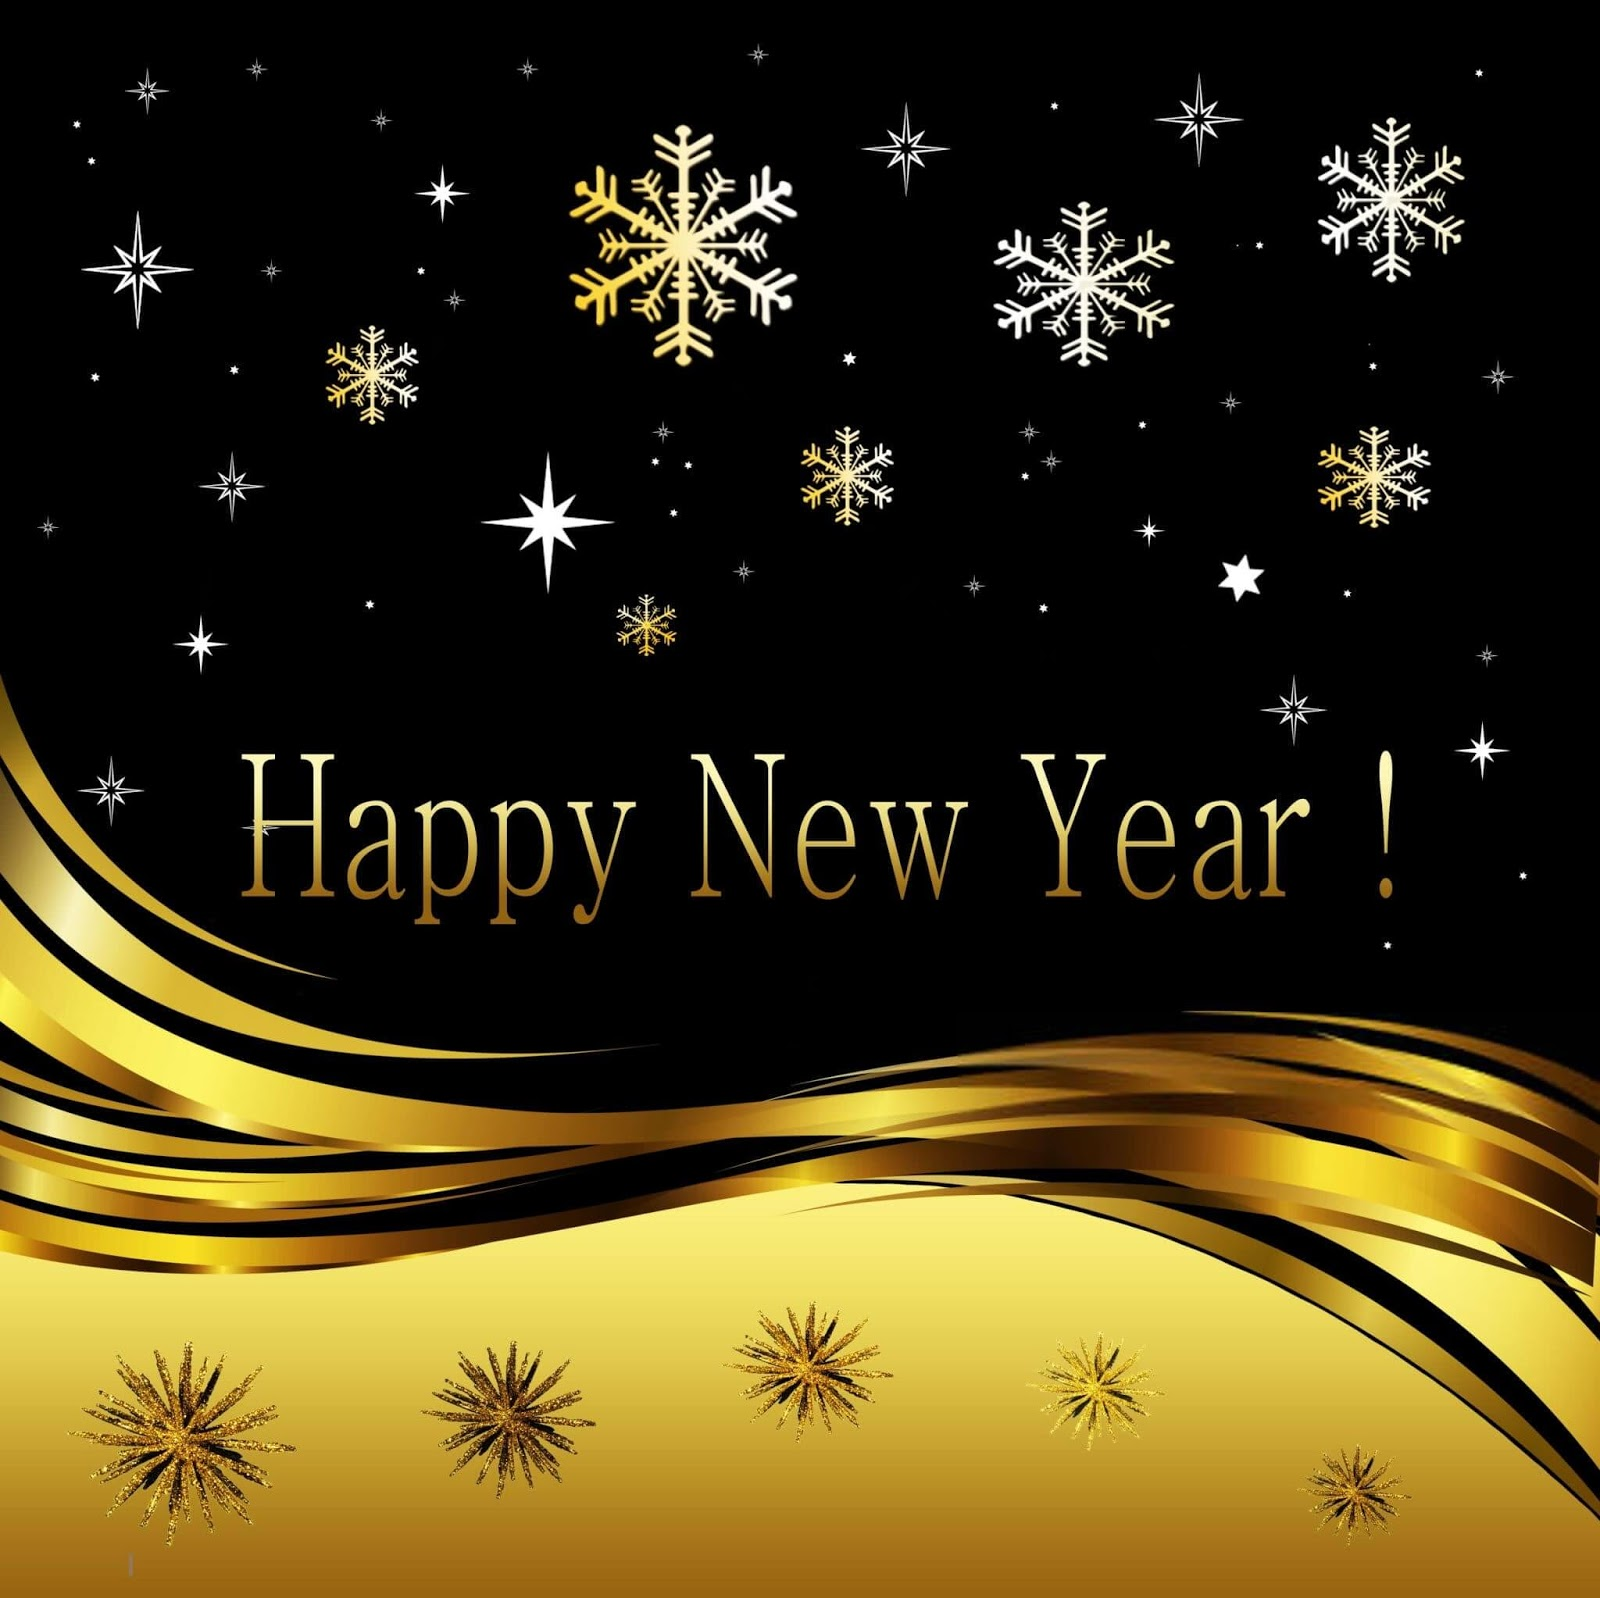 Happy New Year HD Images and Wallpaper Download Free